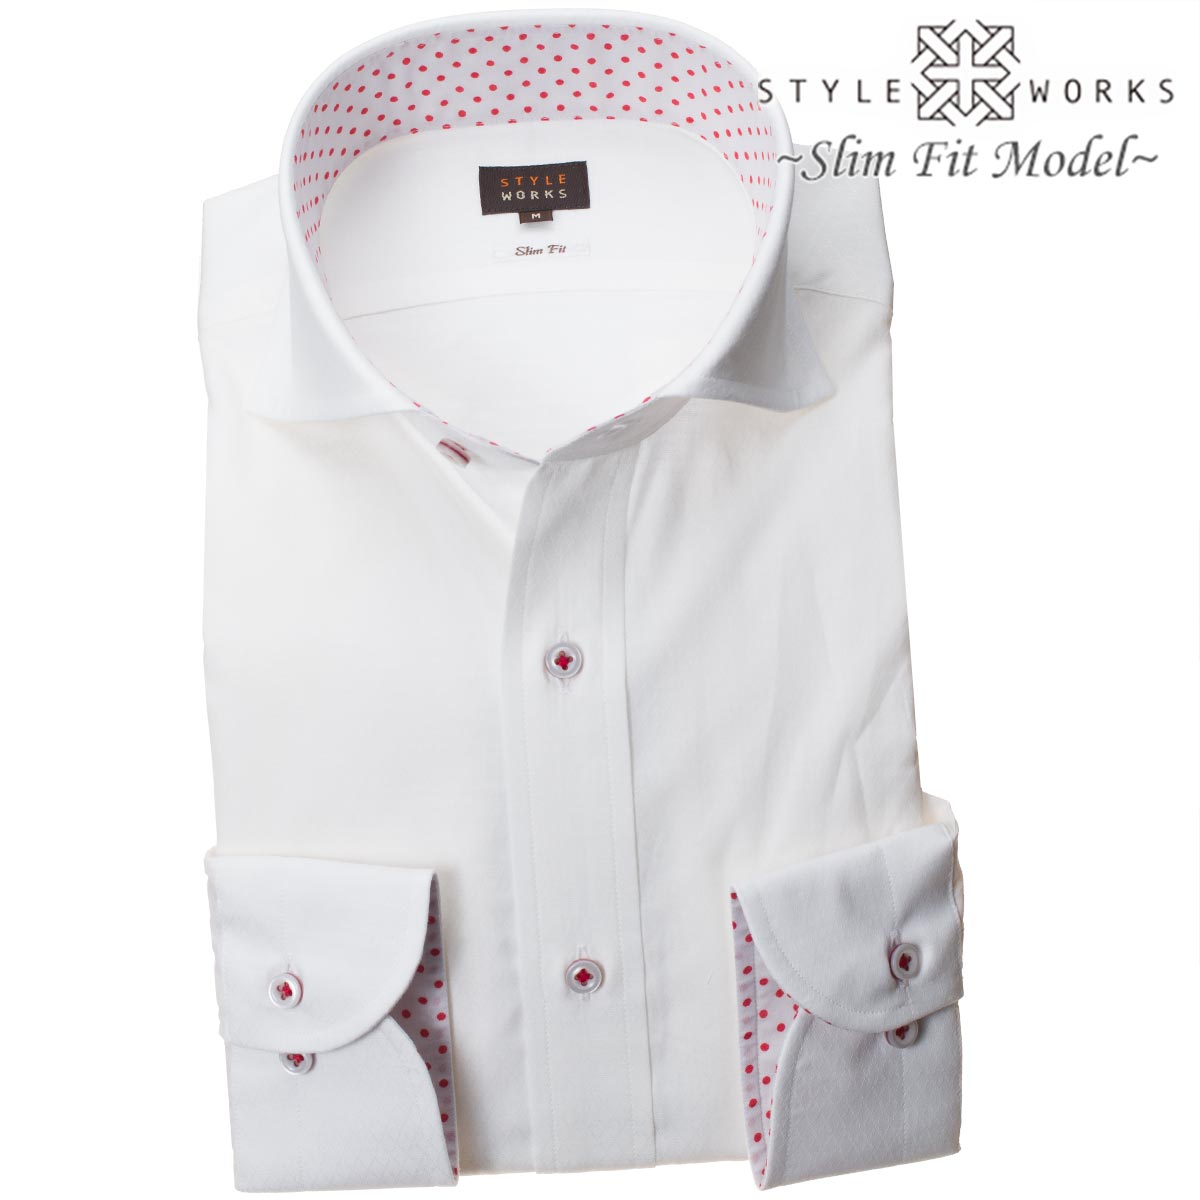 hight resolution of style works 1806 domestic production long sleeves cotton 100 white dress shirt slim fitting cutaway wide color white jacquard diagram check men fs3gm